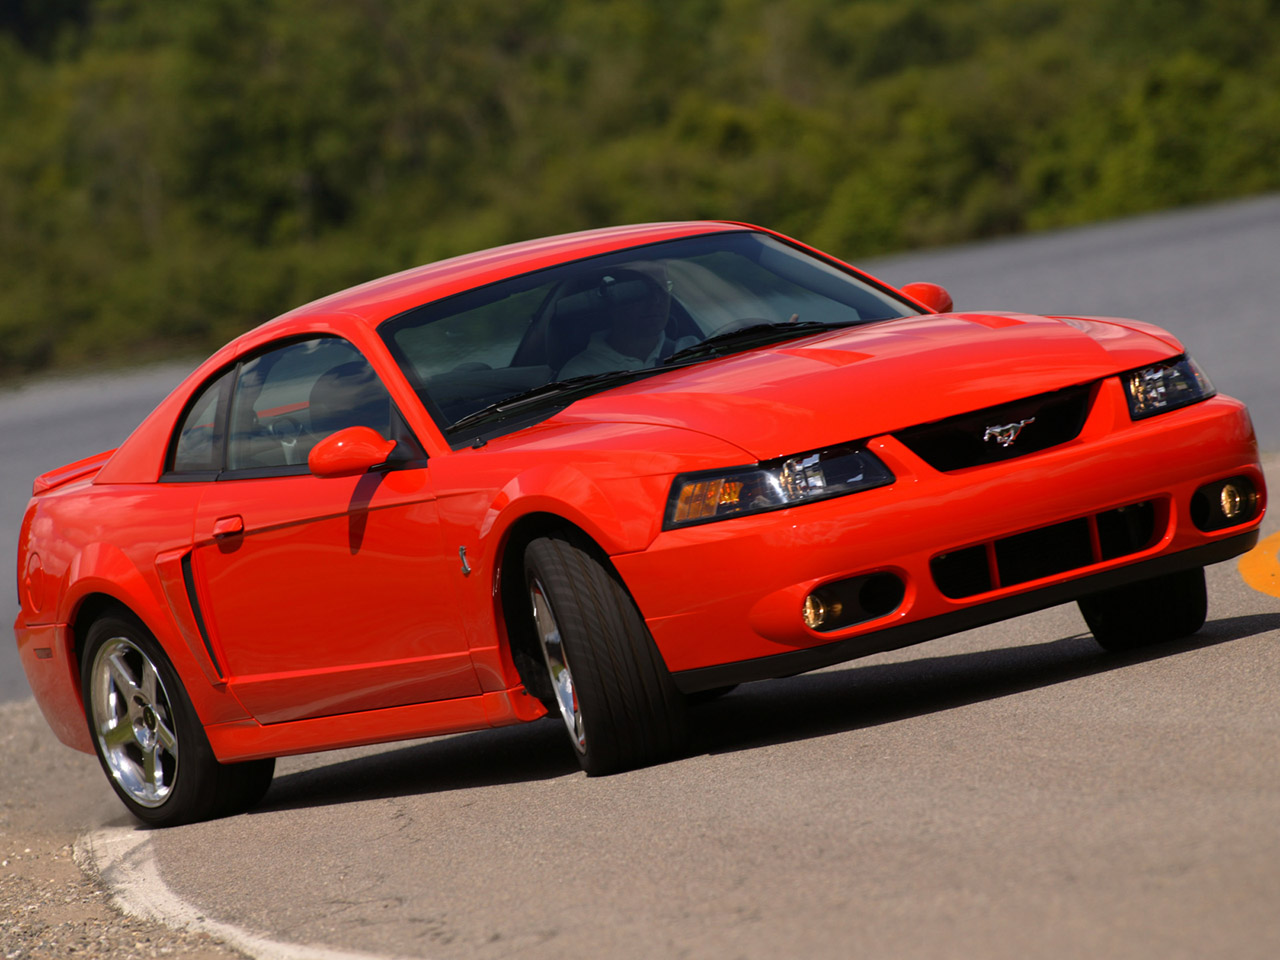 1999 Ford Mustang #5